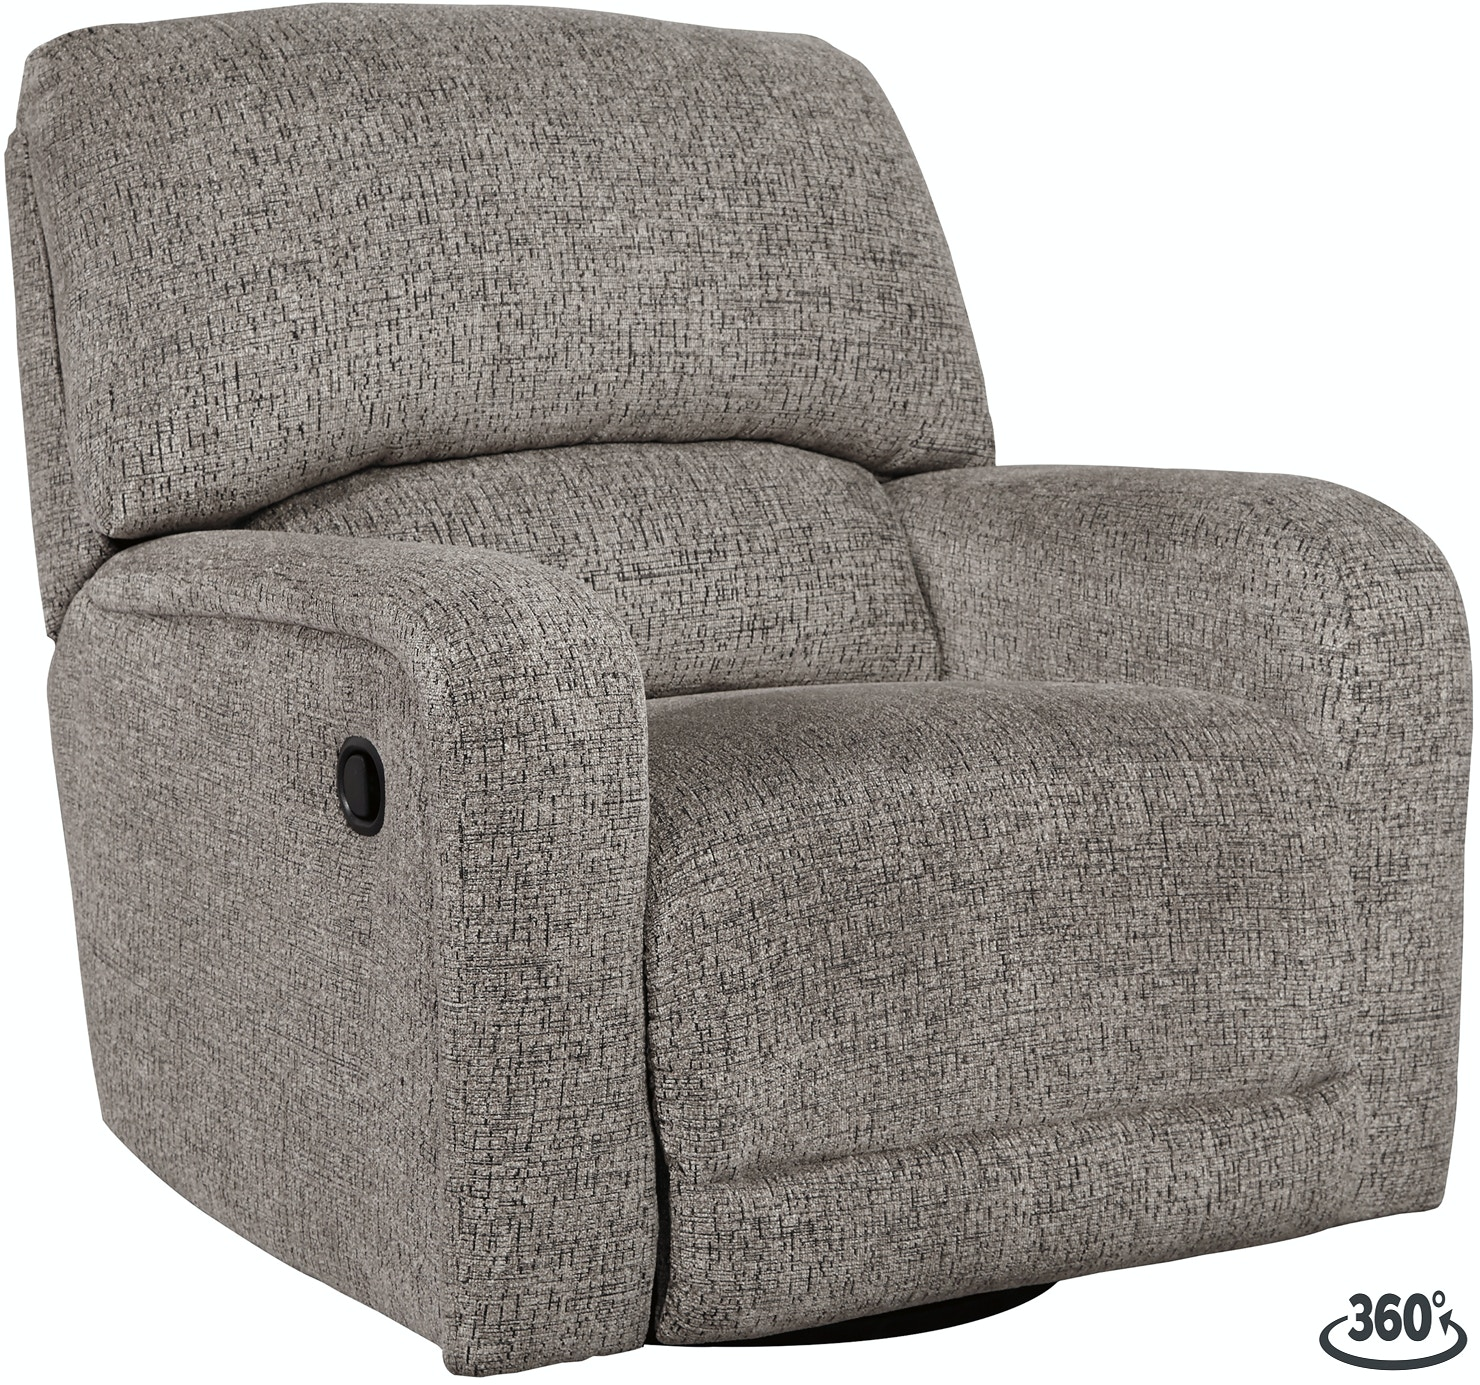 Signature Design by Ashley Living Room Pittsfield Swivel Glider